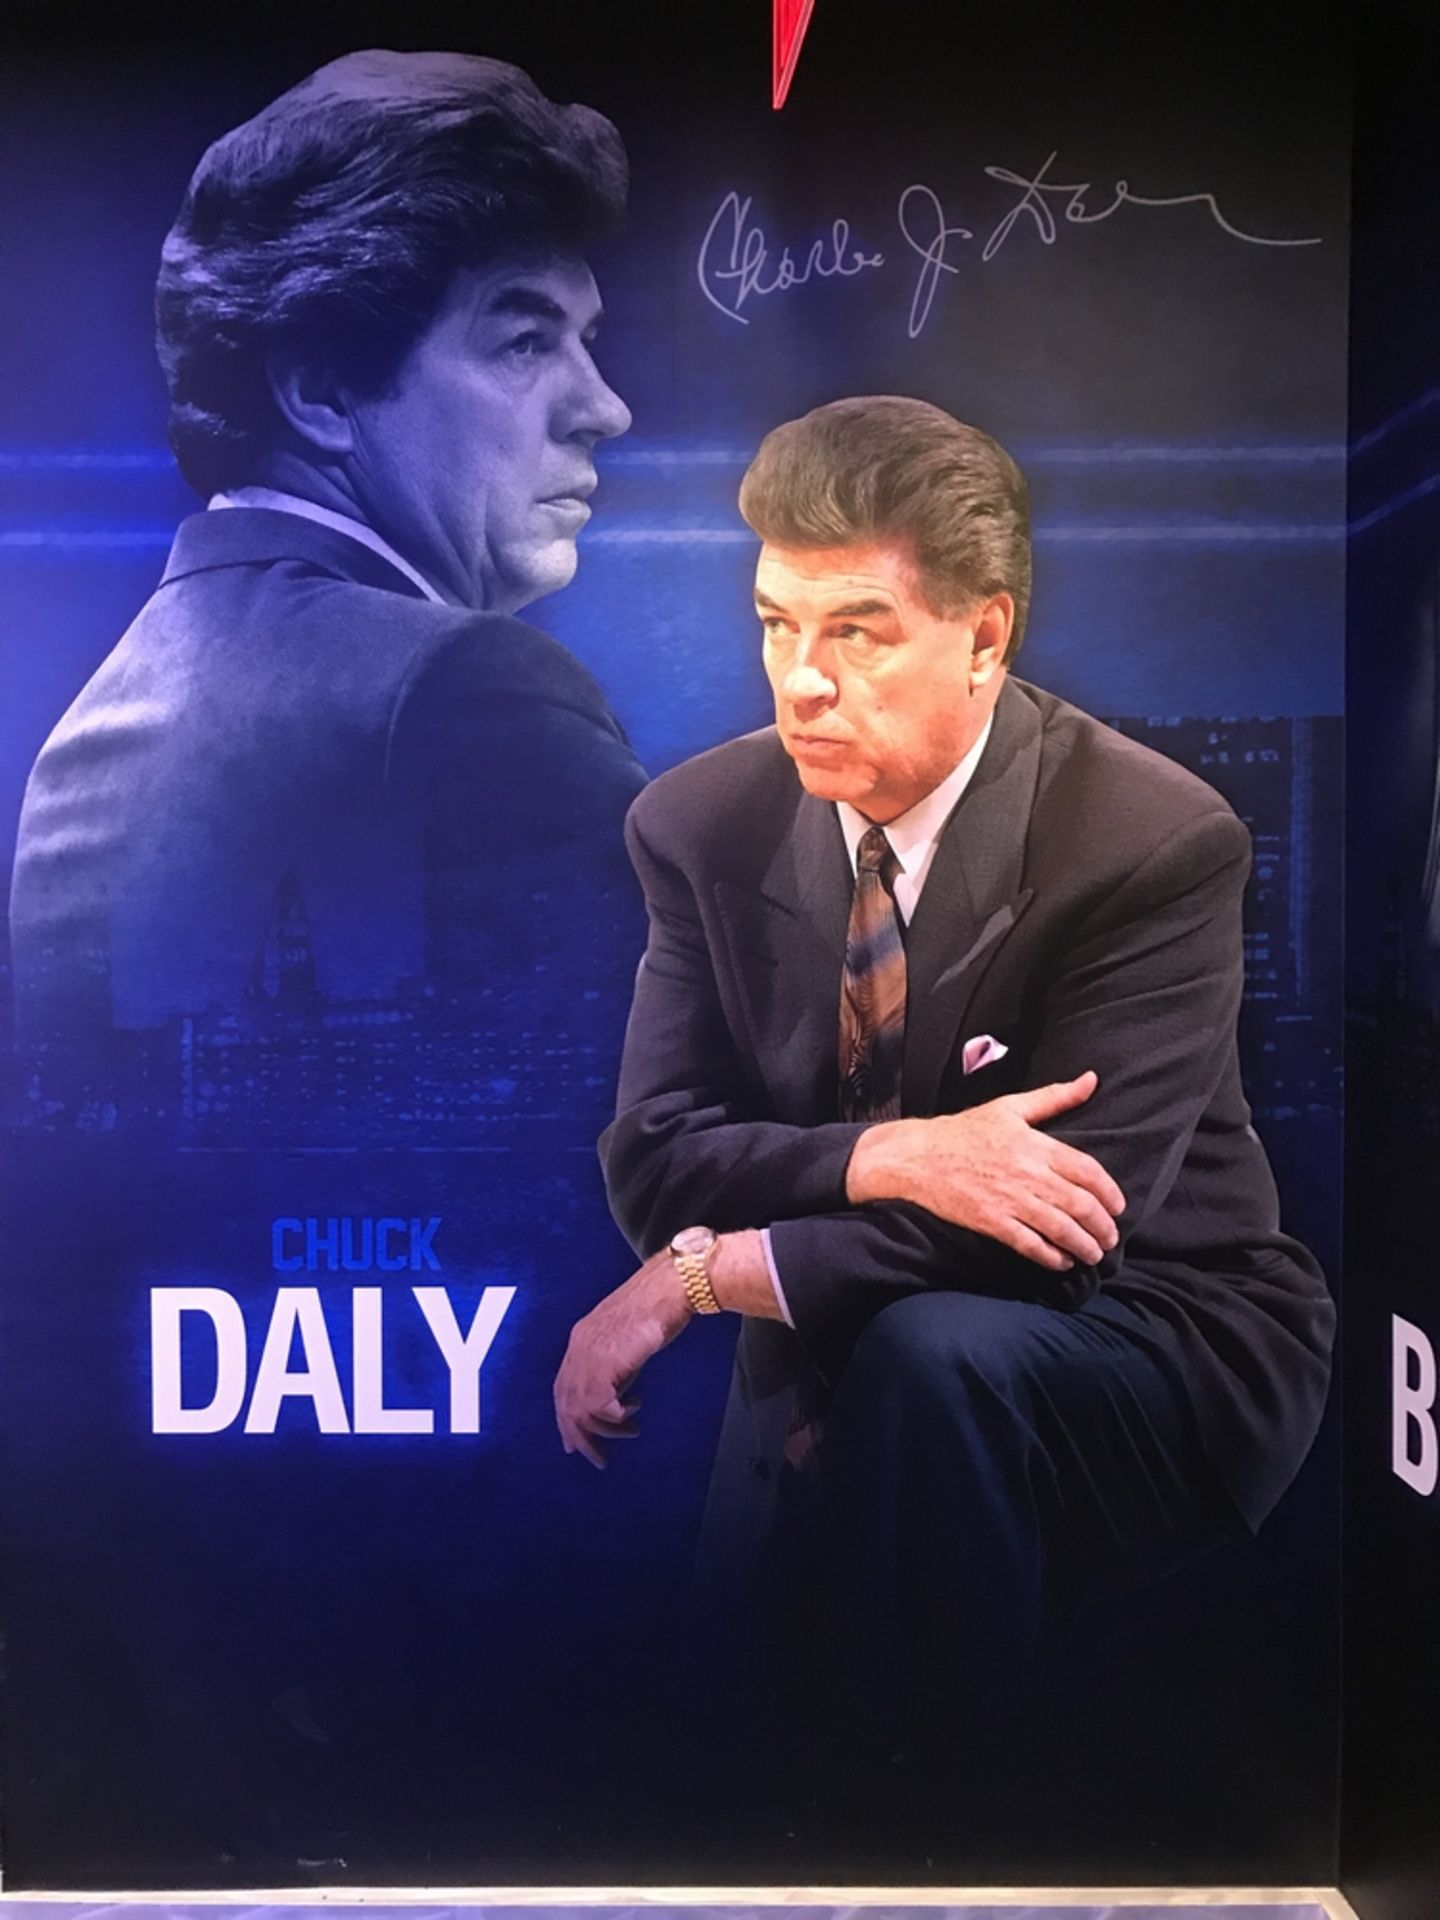 Lot 19 - Chuck Daly - Vinyl Wall Mural , Dim. 83 in w x 116 in h , Location: Locker Room ***Note from